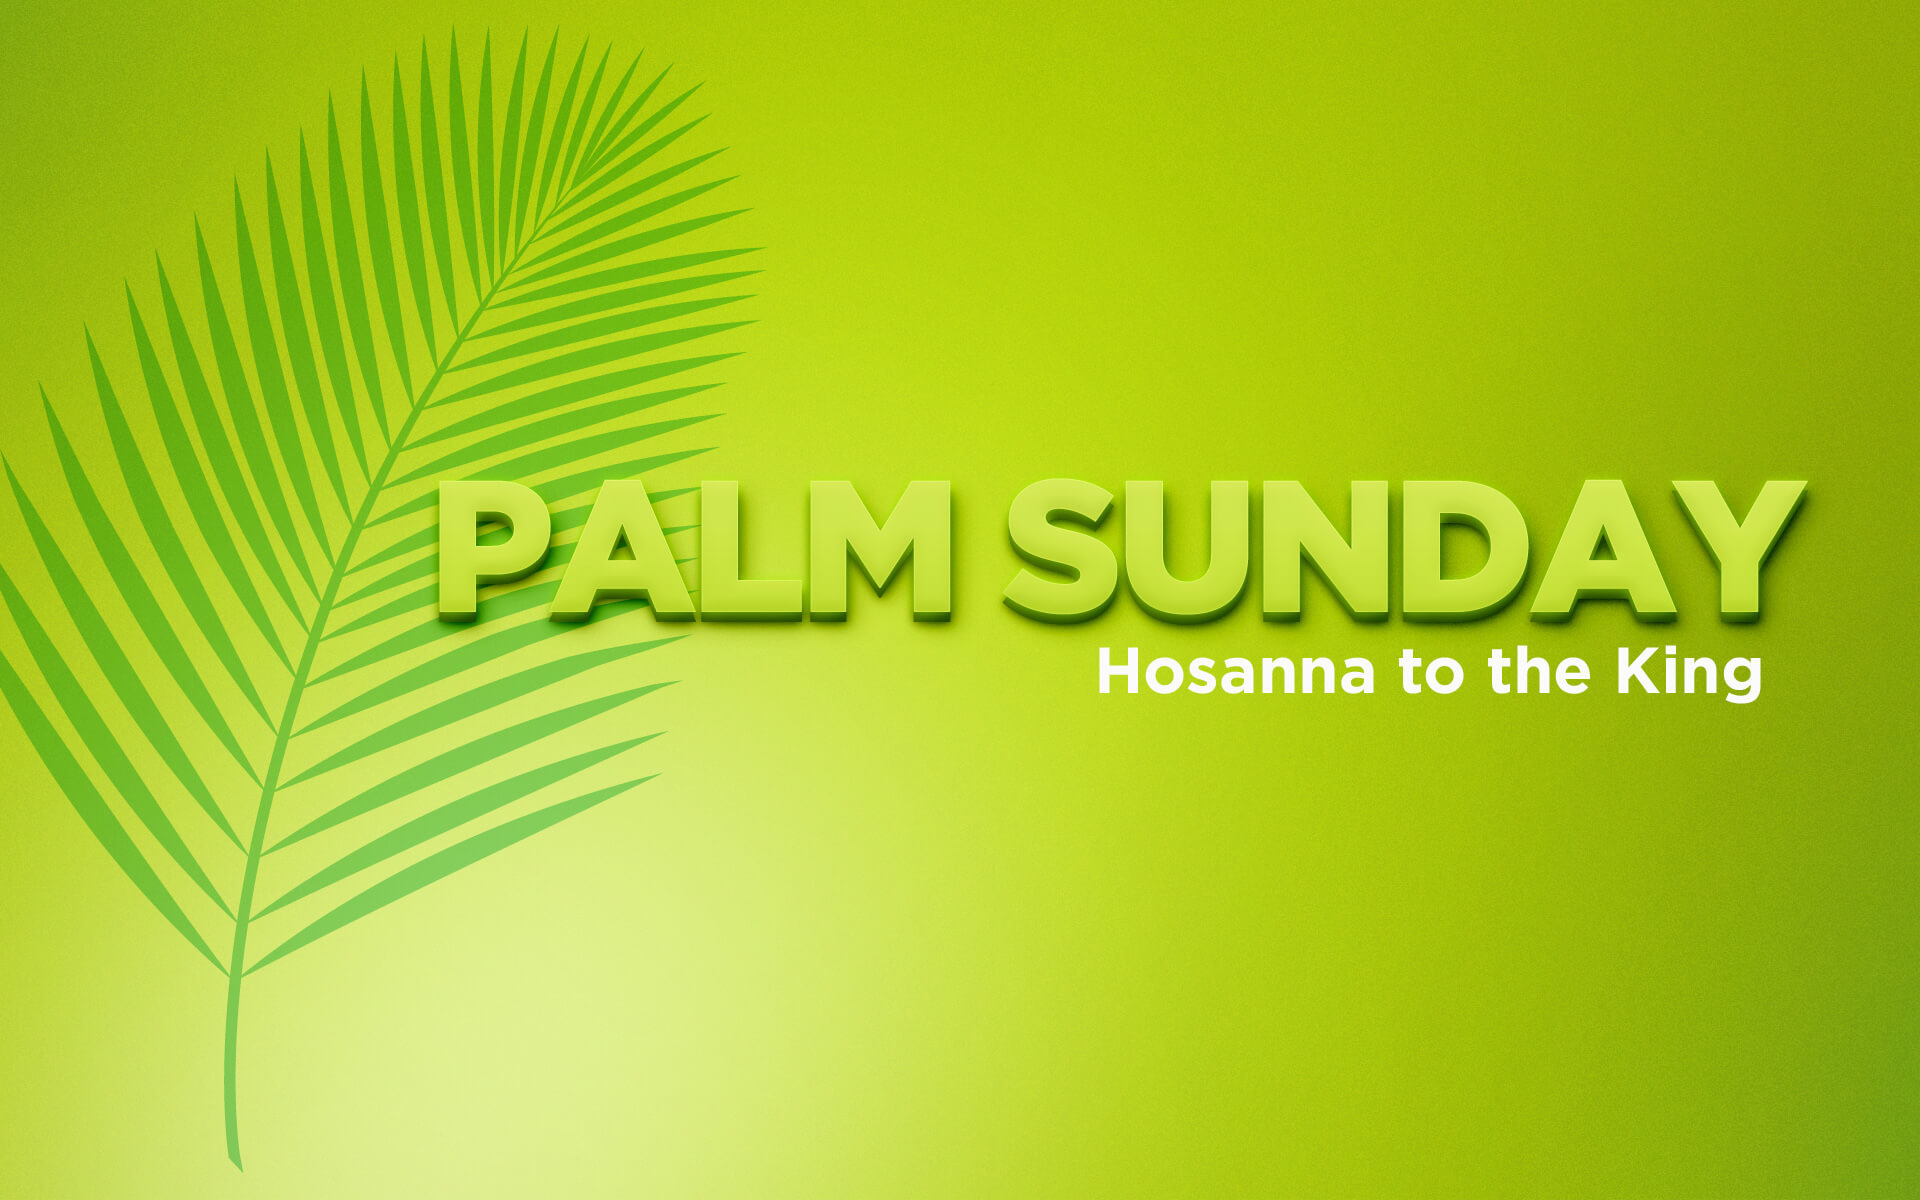 palm sunday hosanna king jesus hd wallpaper